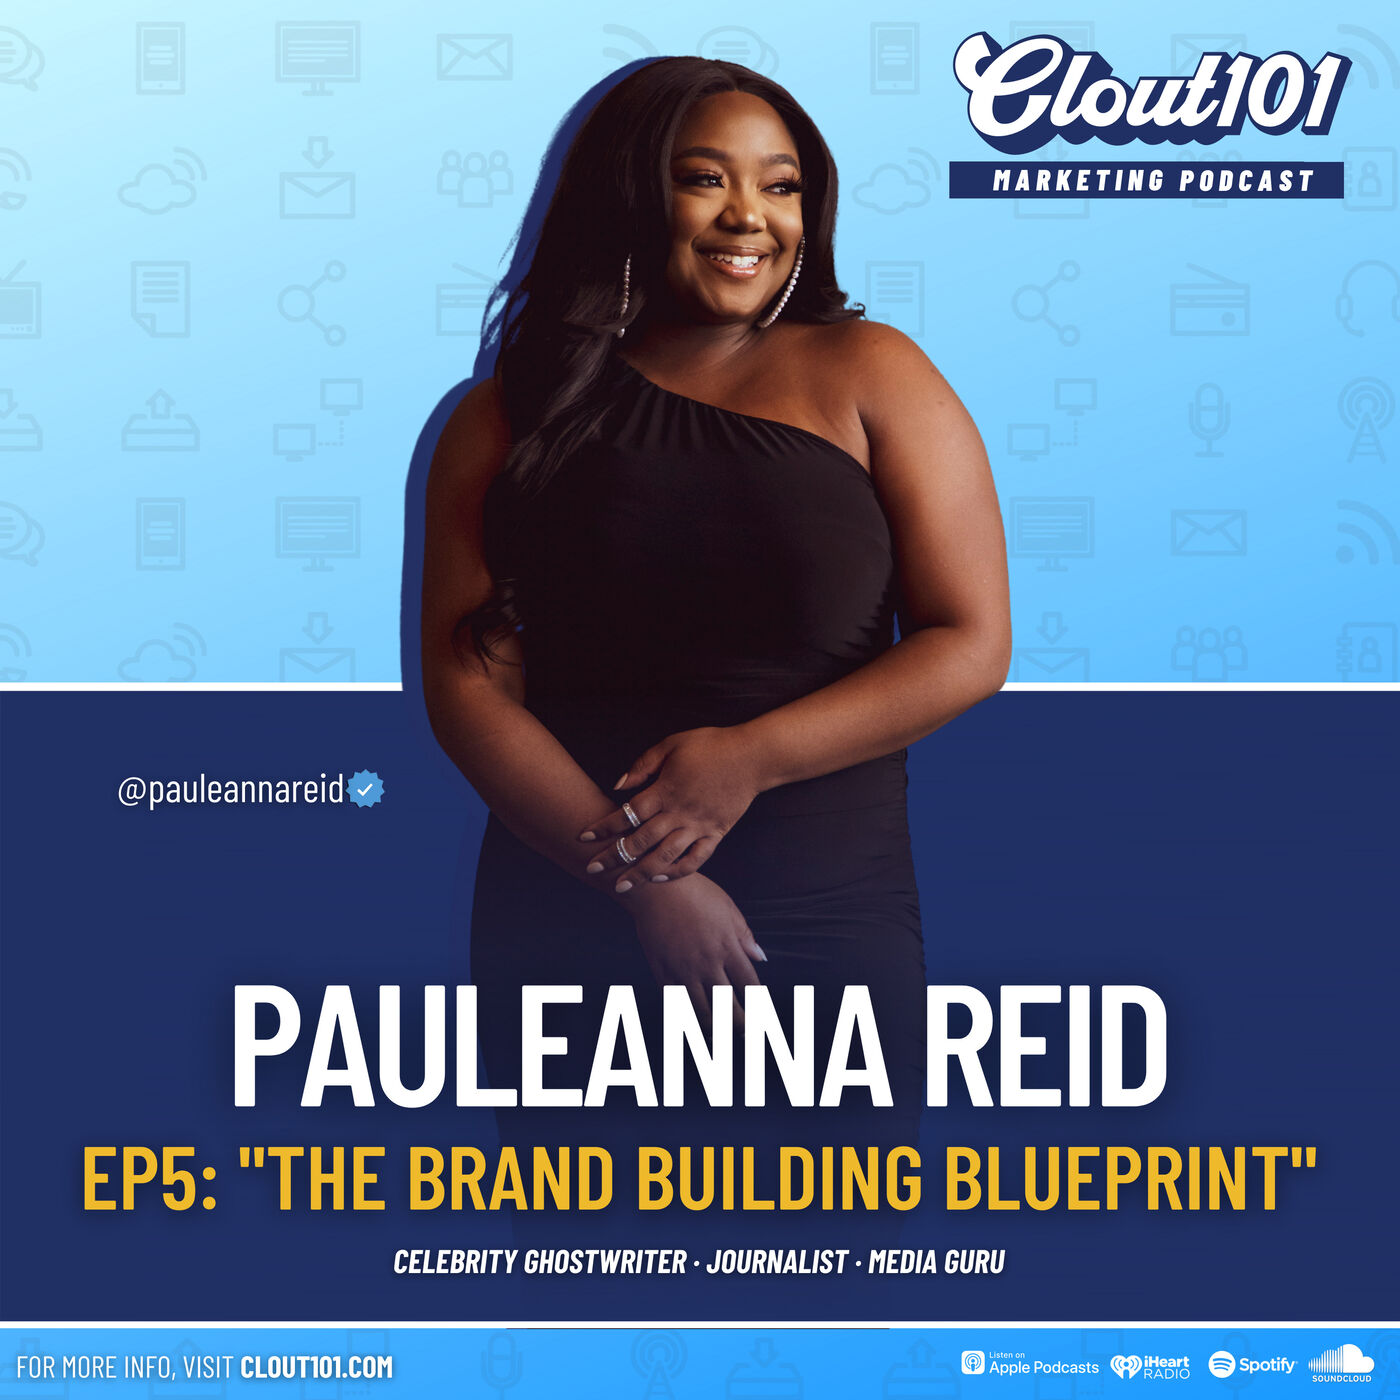 5: Pauleanna Reid on Ghostwriting, Personal Branding, and Writing for Forbes